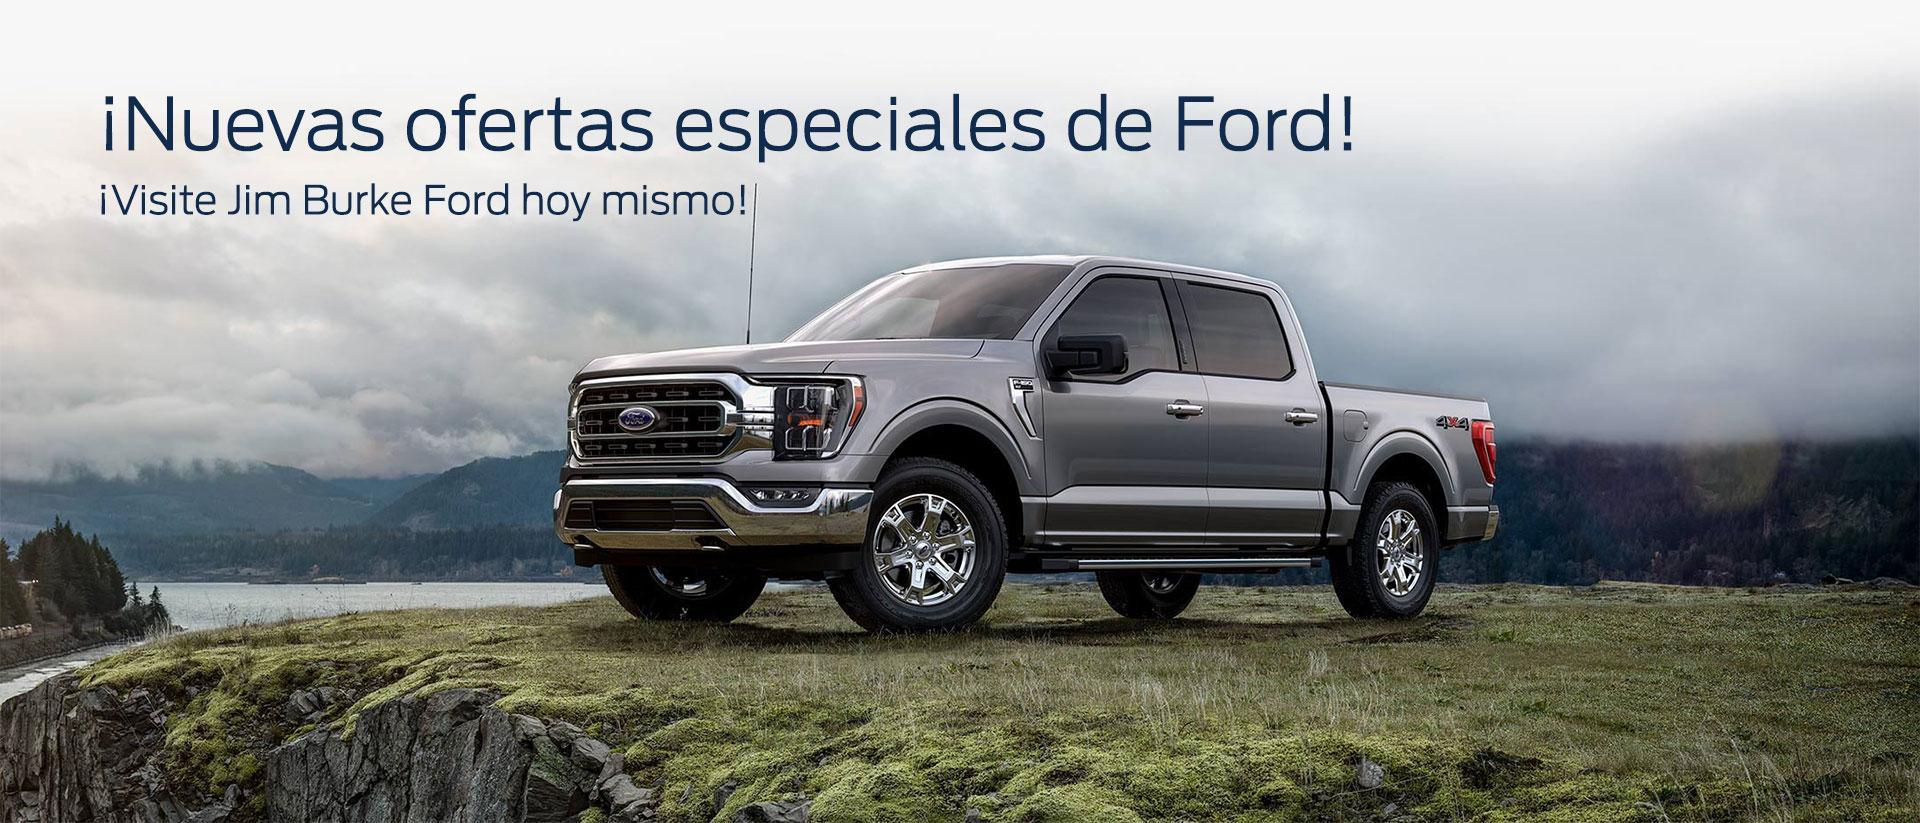 New Offers at Jim Burke Ford